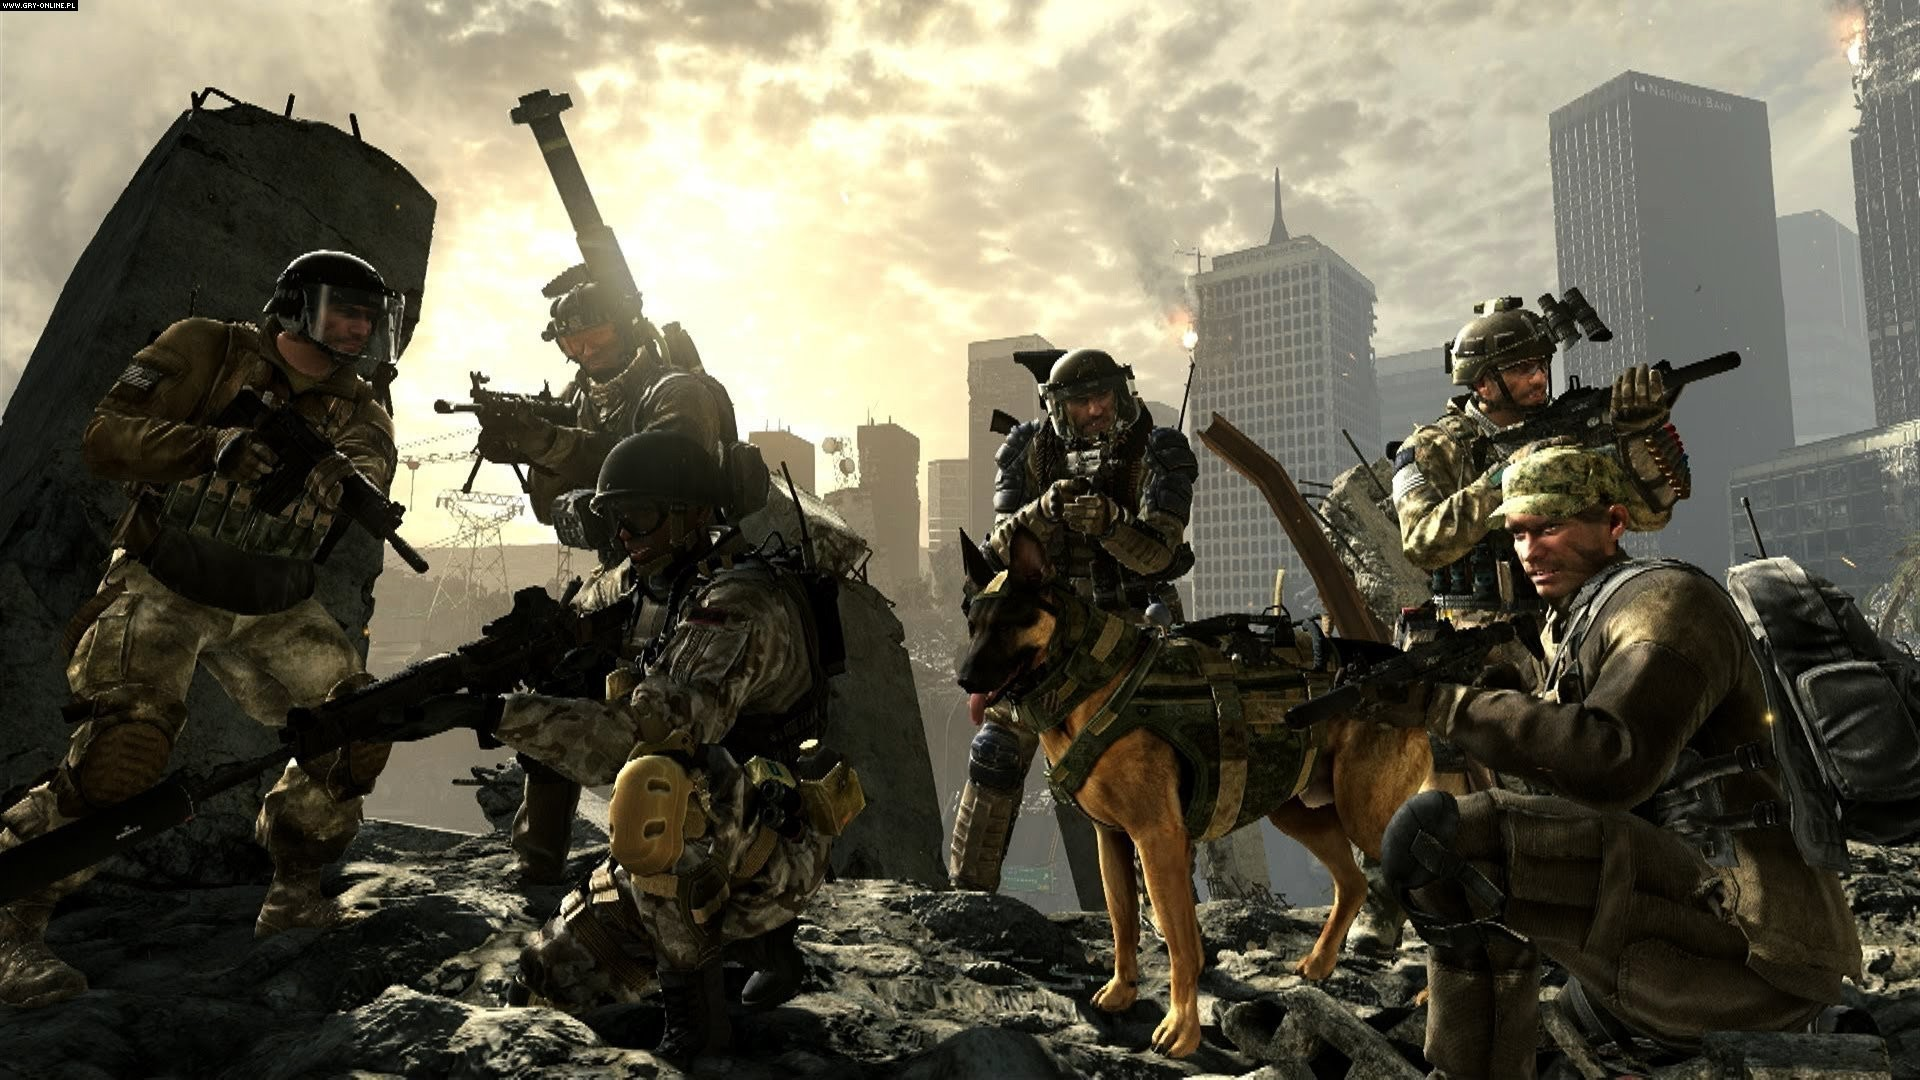 Call of Duty: Ghosts Wallpapers GamersTarget 1920×1200 Call Of Duty Ghosts  Wallpaper (